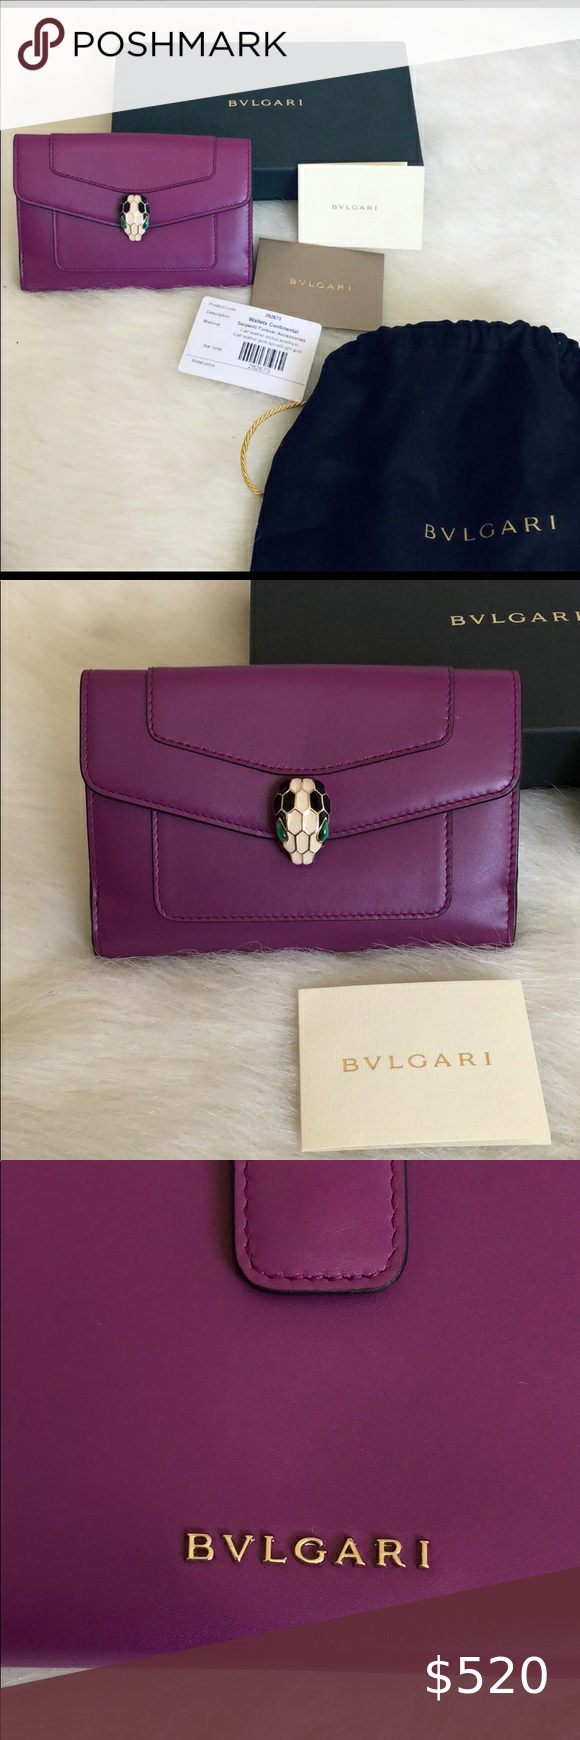 2 X Hp Bvlgari Serpenti Compact Wallet Orchid In 2020 Clothes Design Bvlgari Serpenti Compact Wallets